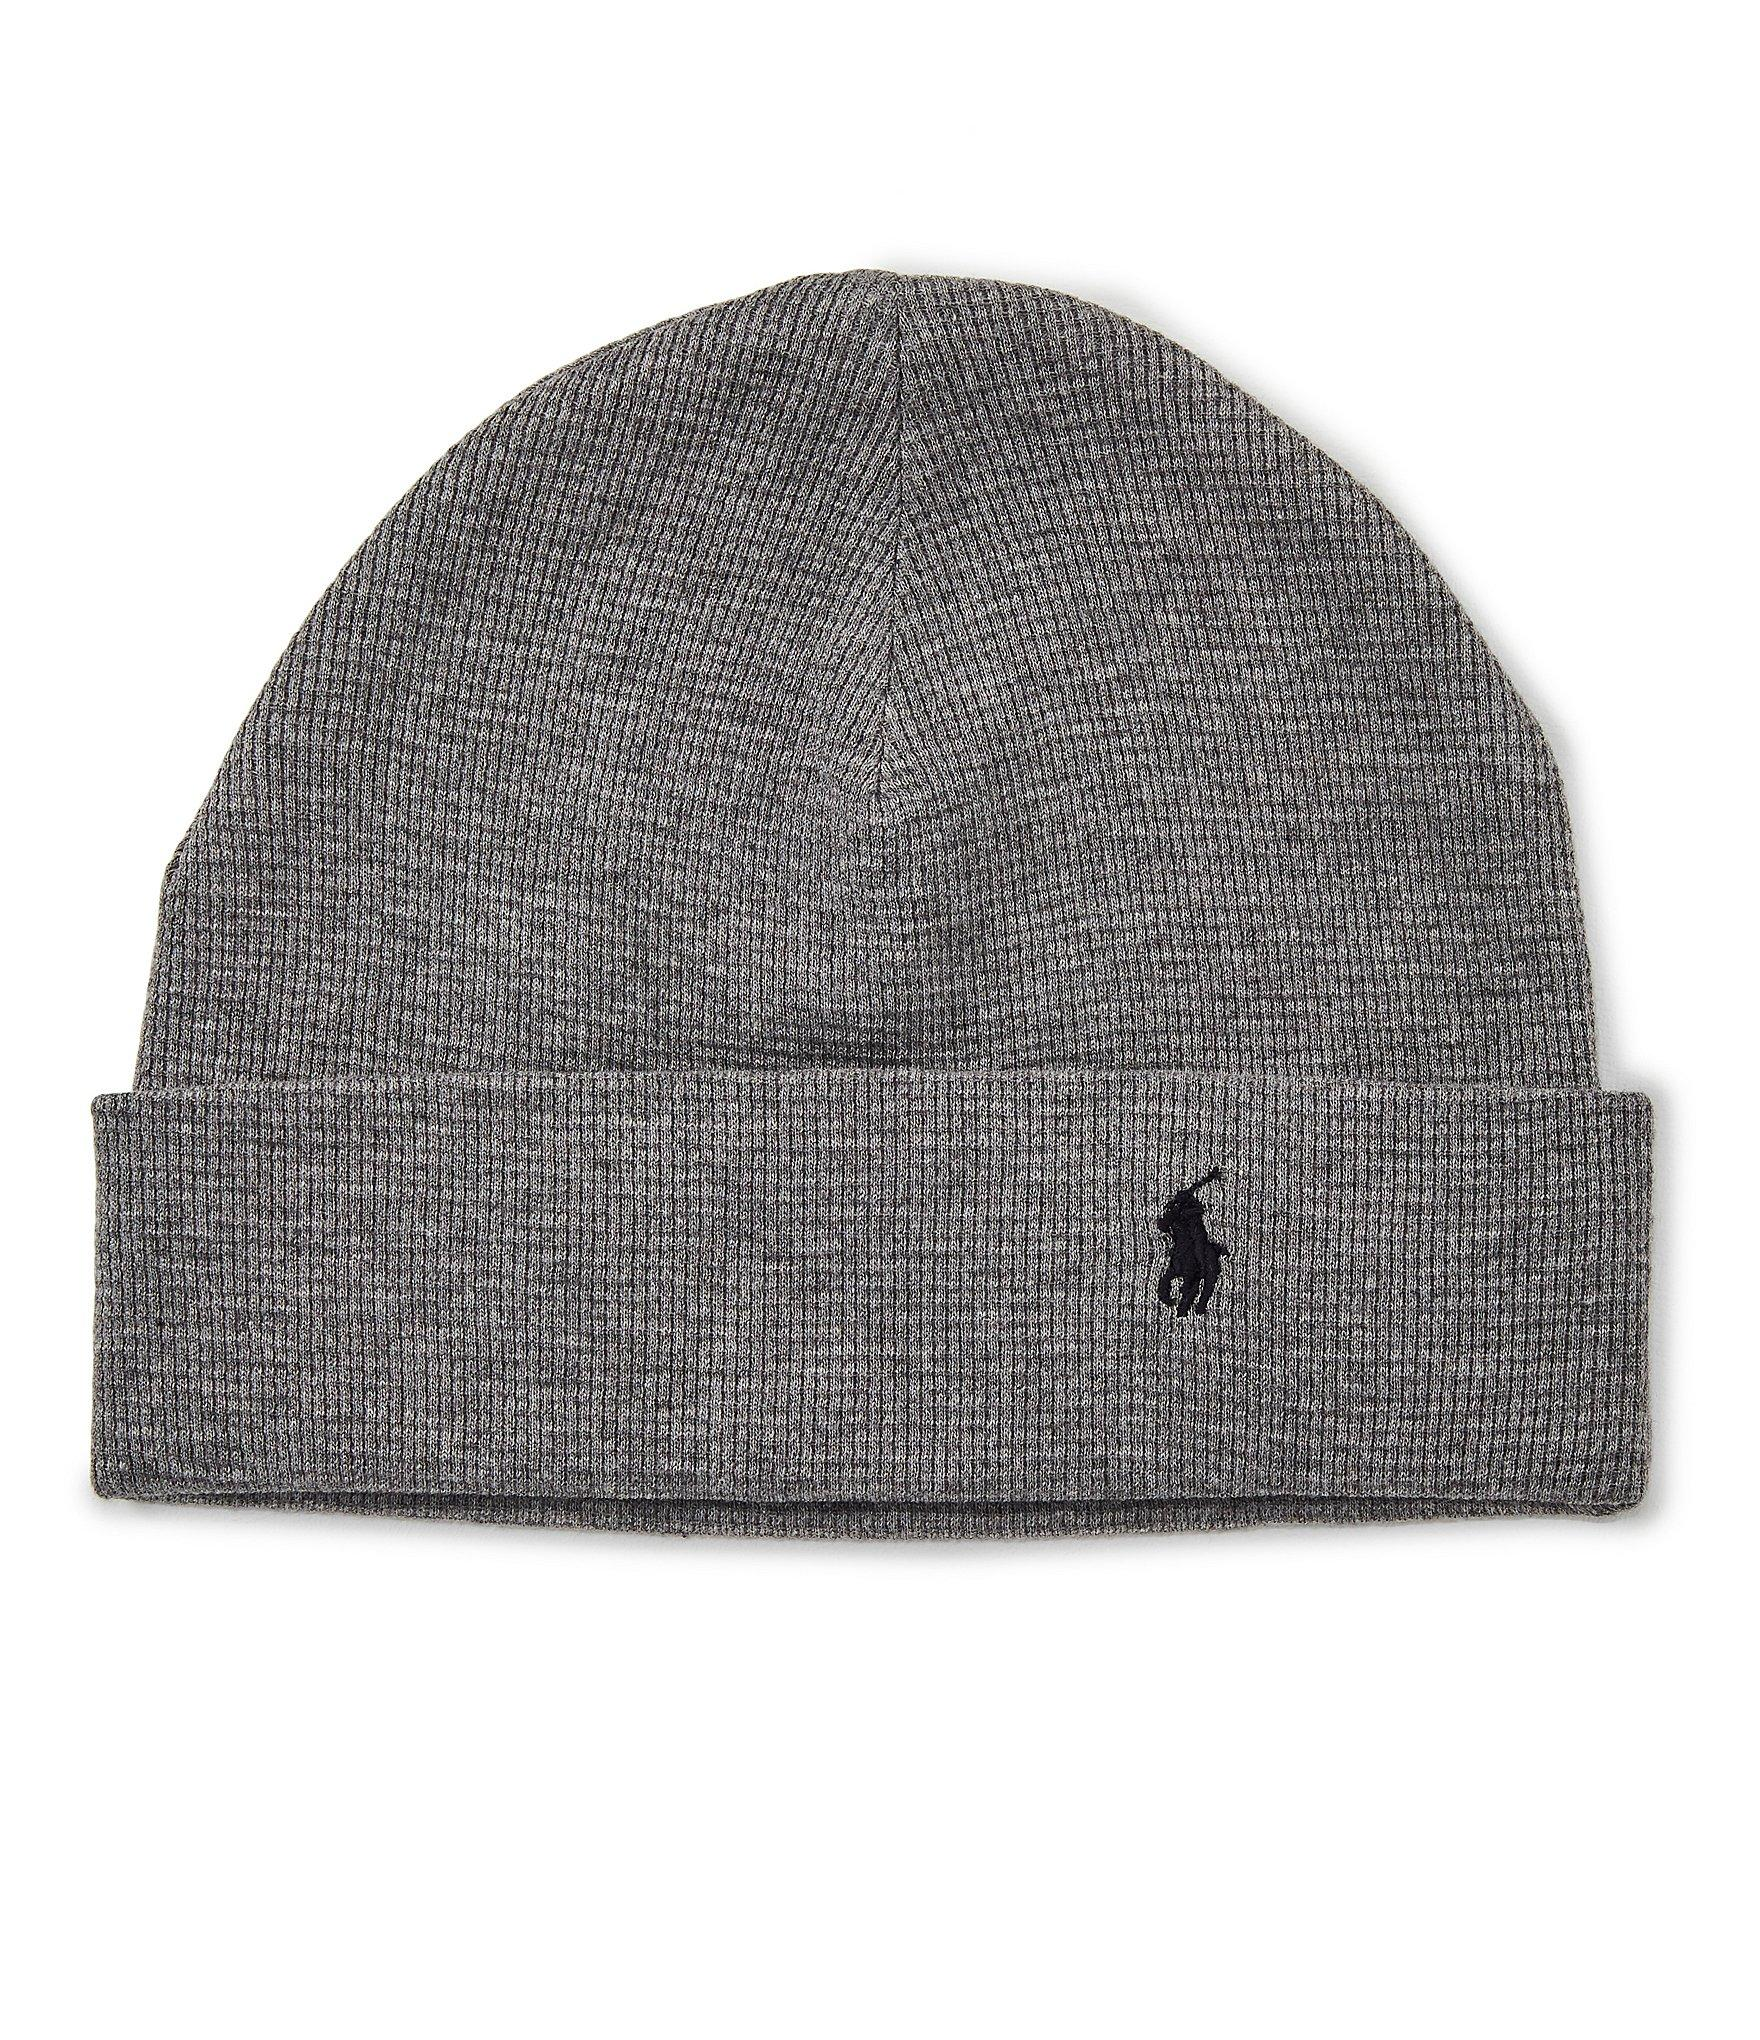 a25b30a7 Lyst - Polo Ralph Lauren Thermal Cuff Beanie in Gray for Men